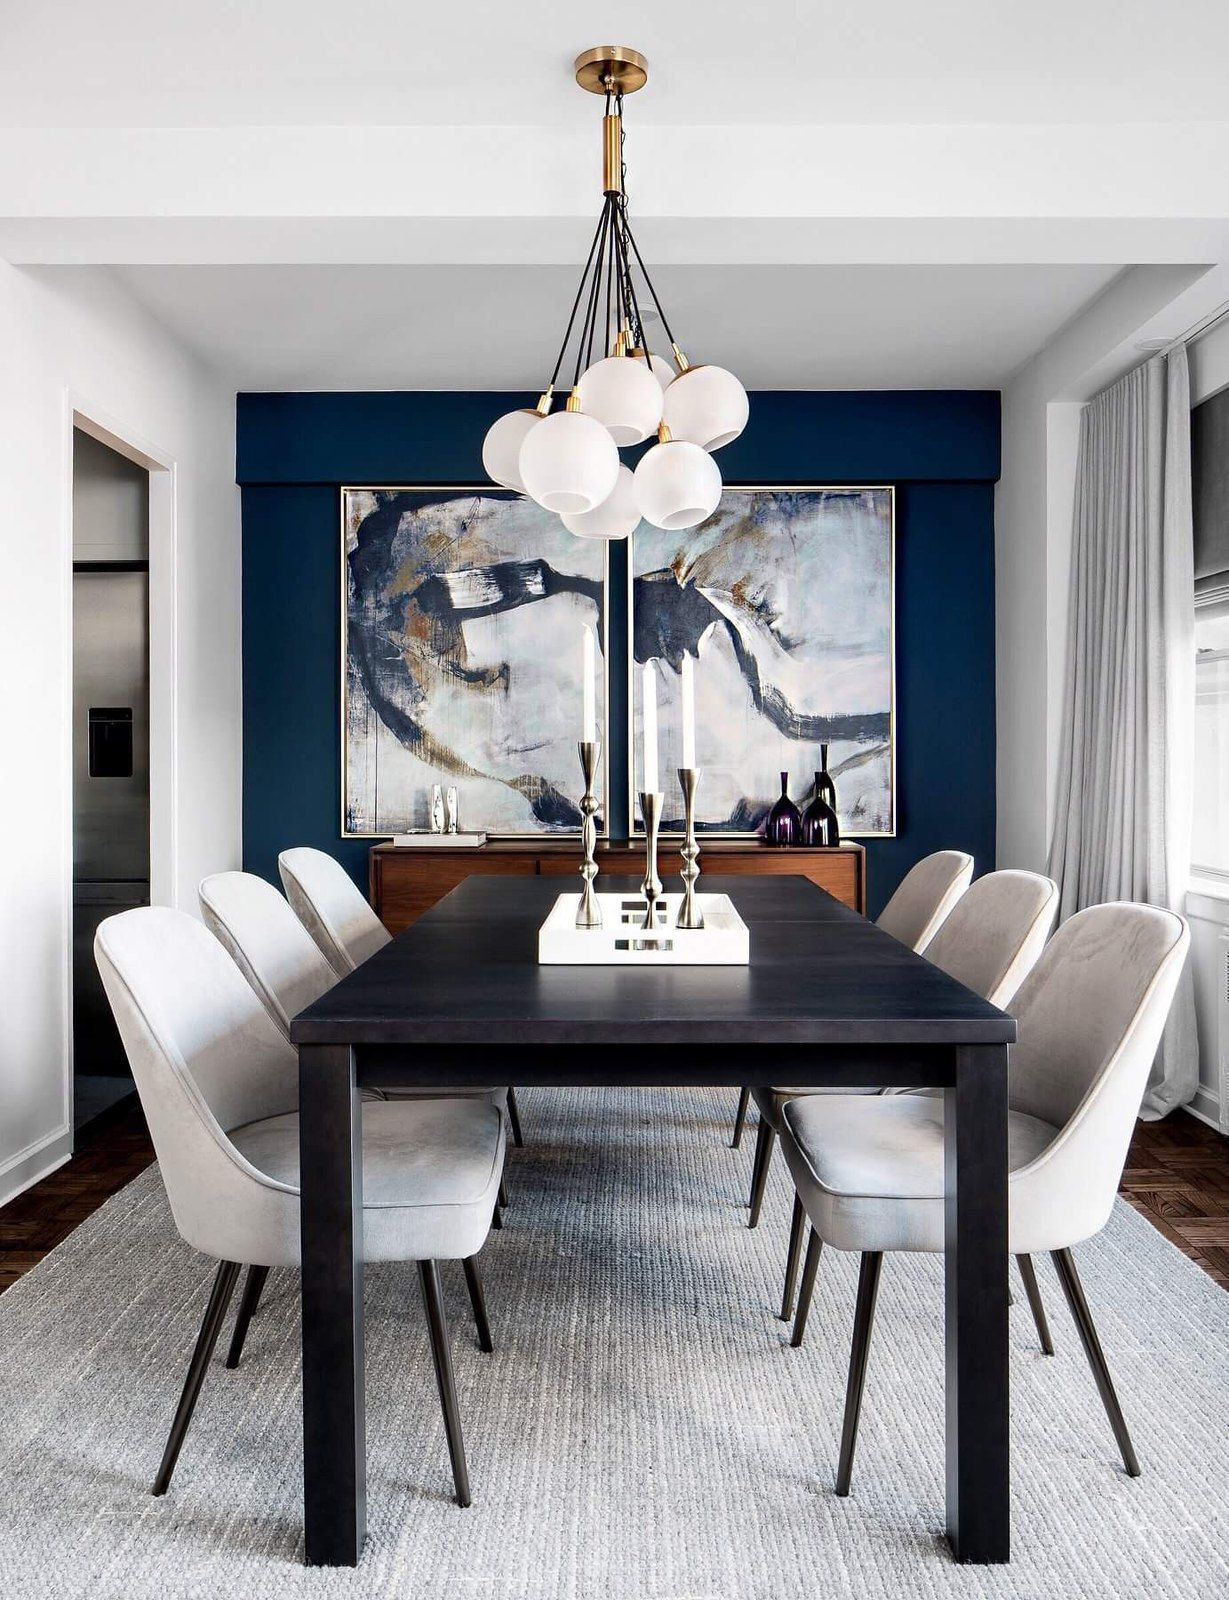 My Love Affair With Velvet Dining Chairs Living After Midnite Small Dining Room Decor Dining Room Small Dining Room Blue